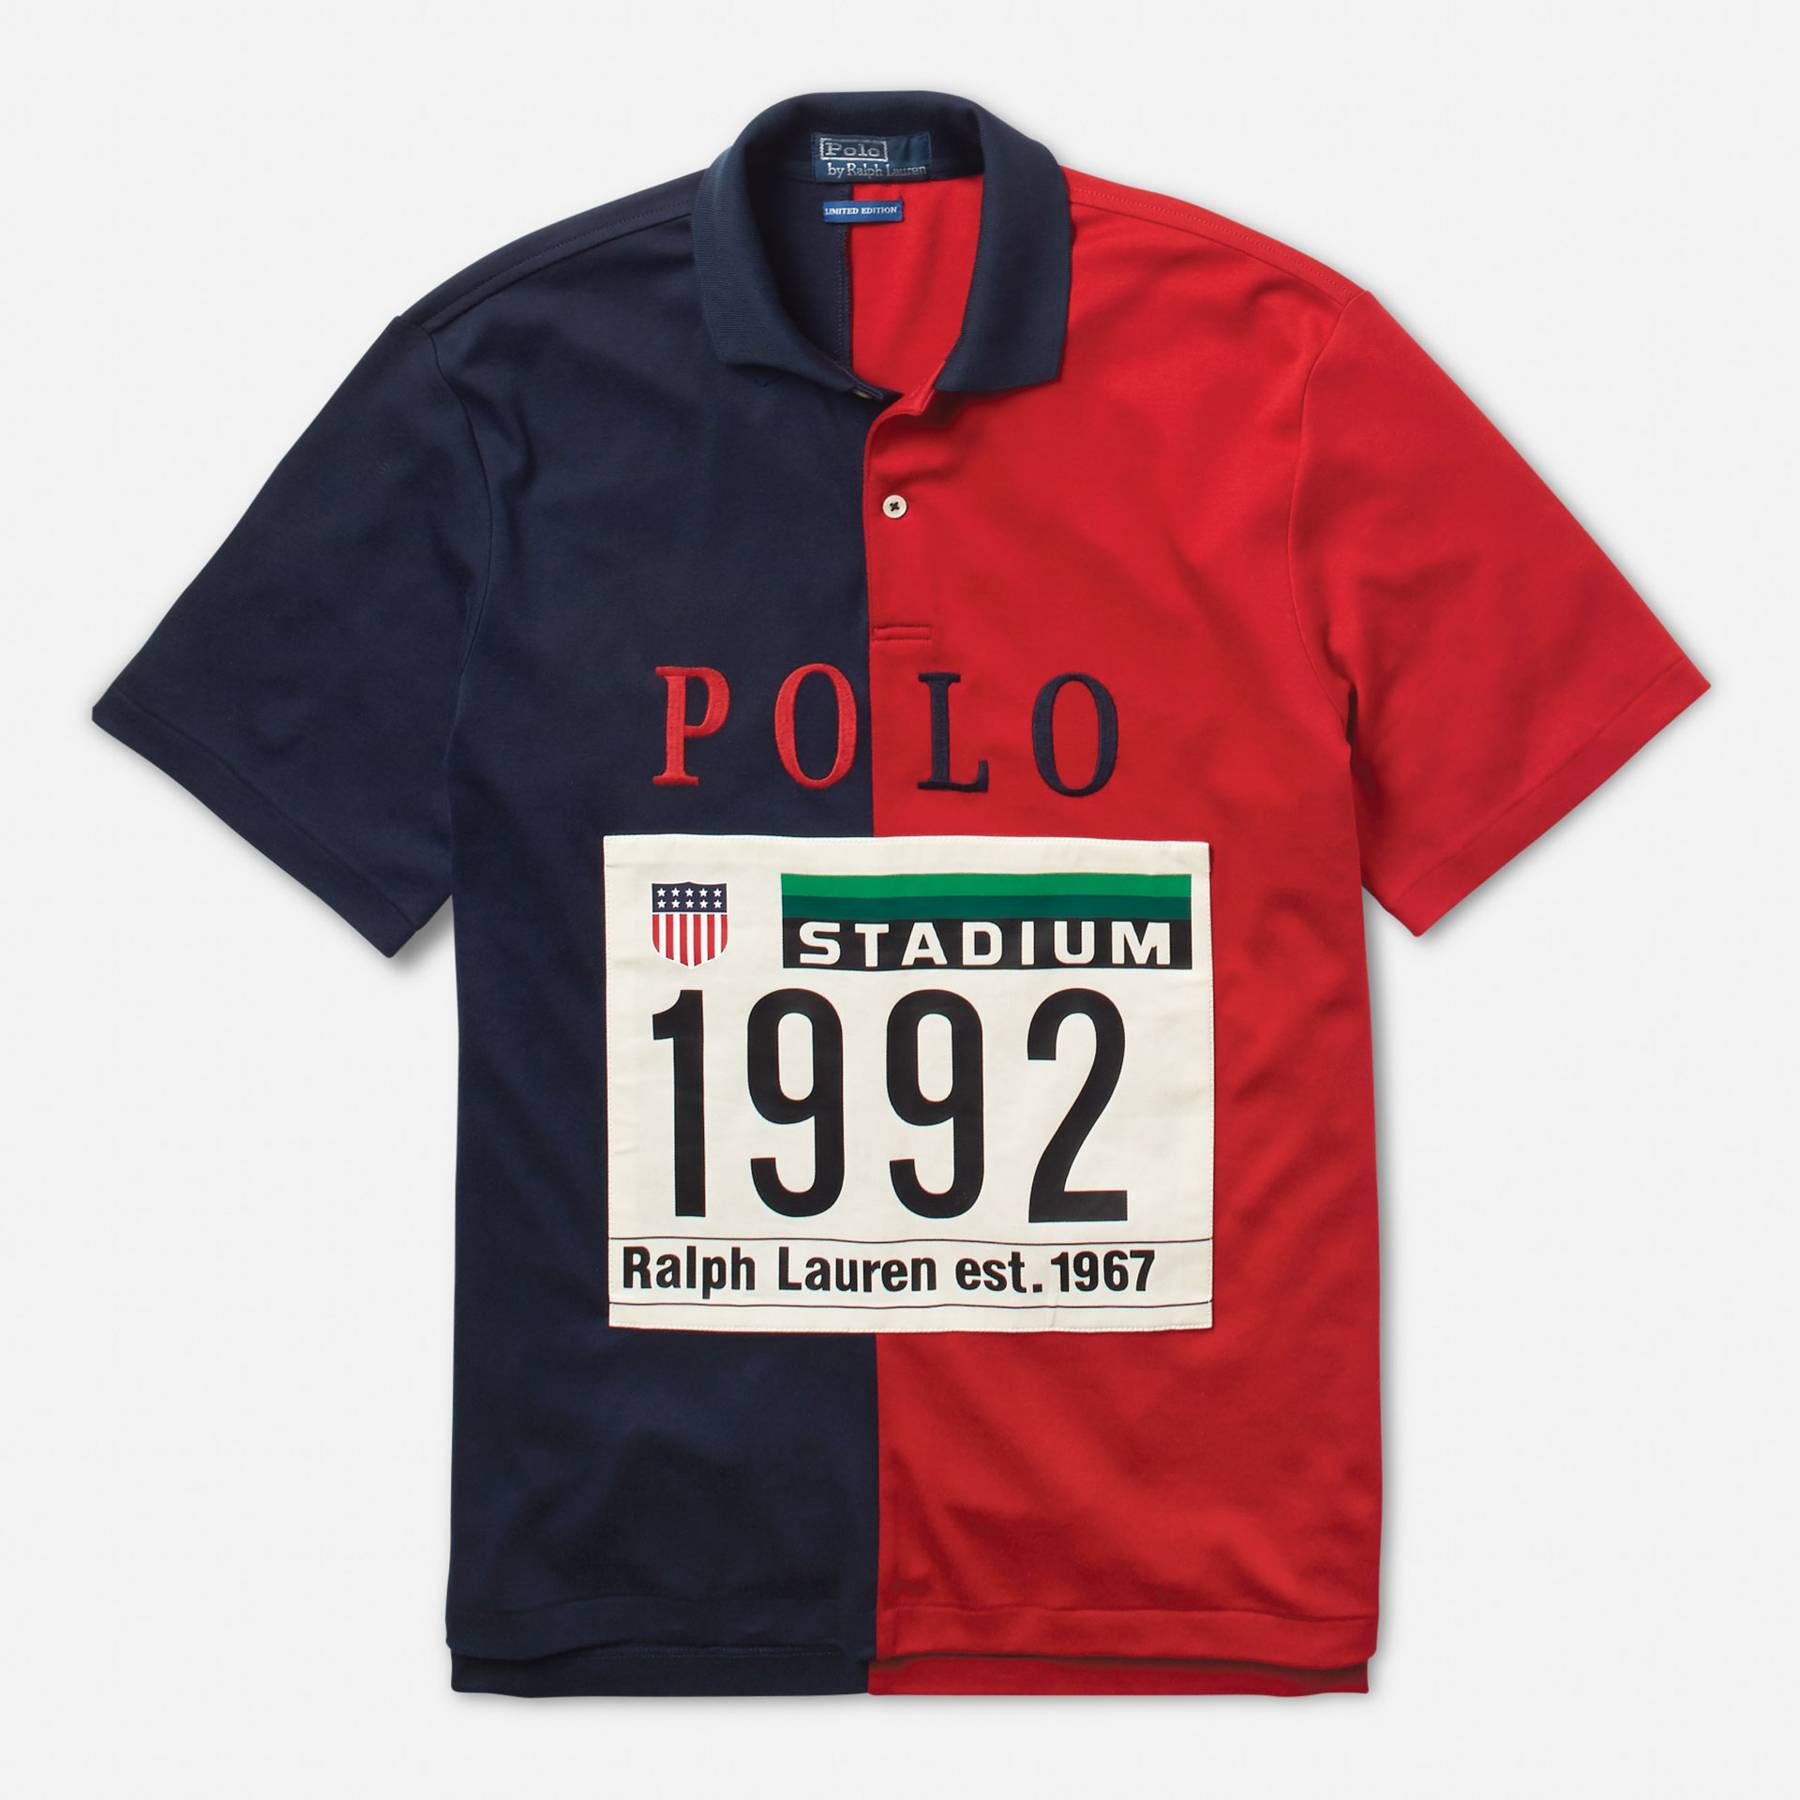 Ralph Lauren goes back to the 90s for Polo Stadium   British GQ c3ea06a393